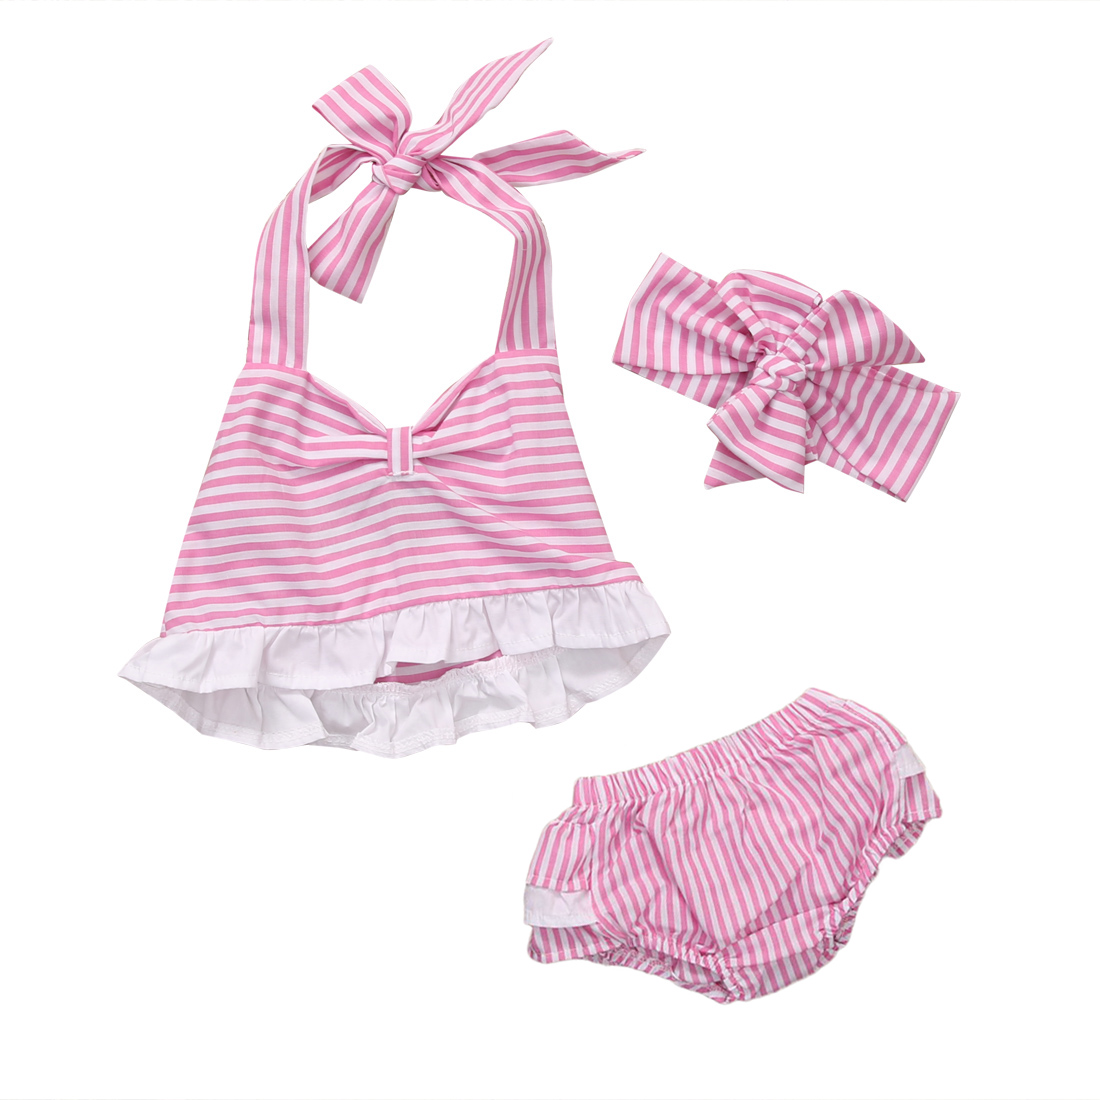 3PCS Set Newborn Baby Girl Clothes 2017 Summer Sleeveless Backless Striped Halter Crop Top+Tutu Skirted Bottom Headband Outfits 2017 sequins mermaid newborn baby girl summer tutu skirted romper bodysuit jumpsuit headband 2pcs outfits kids clothing set